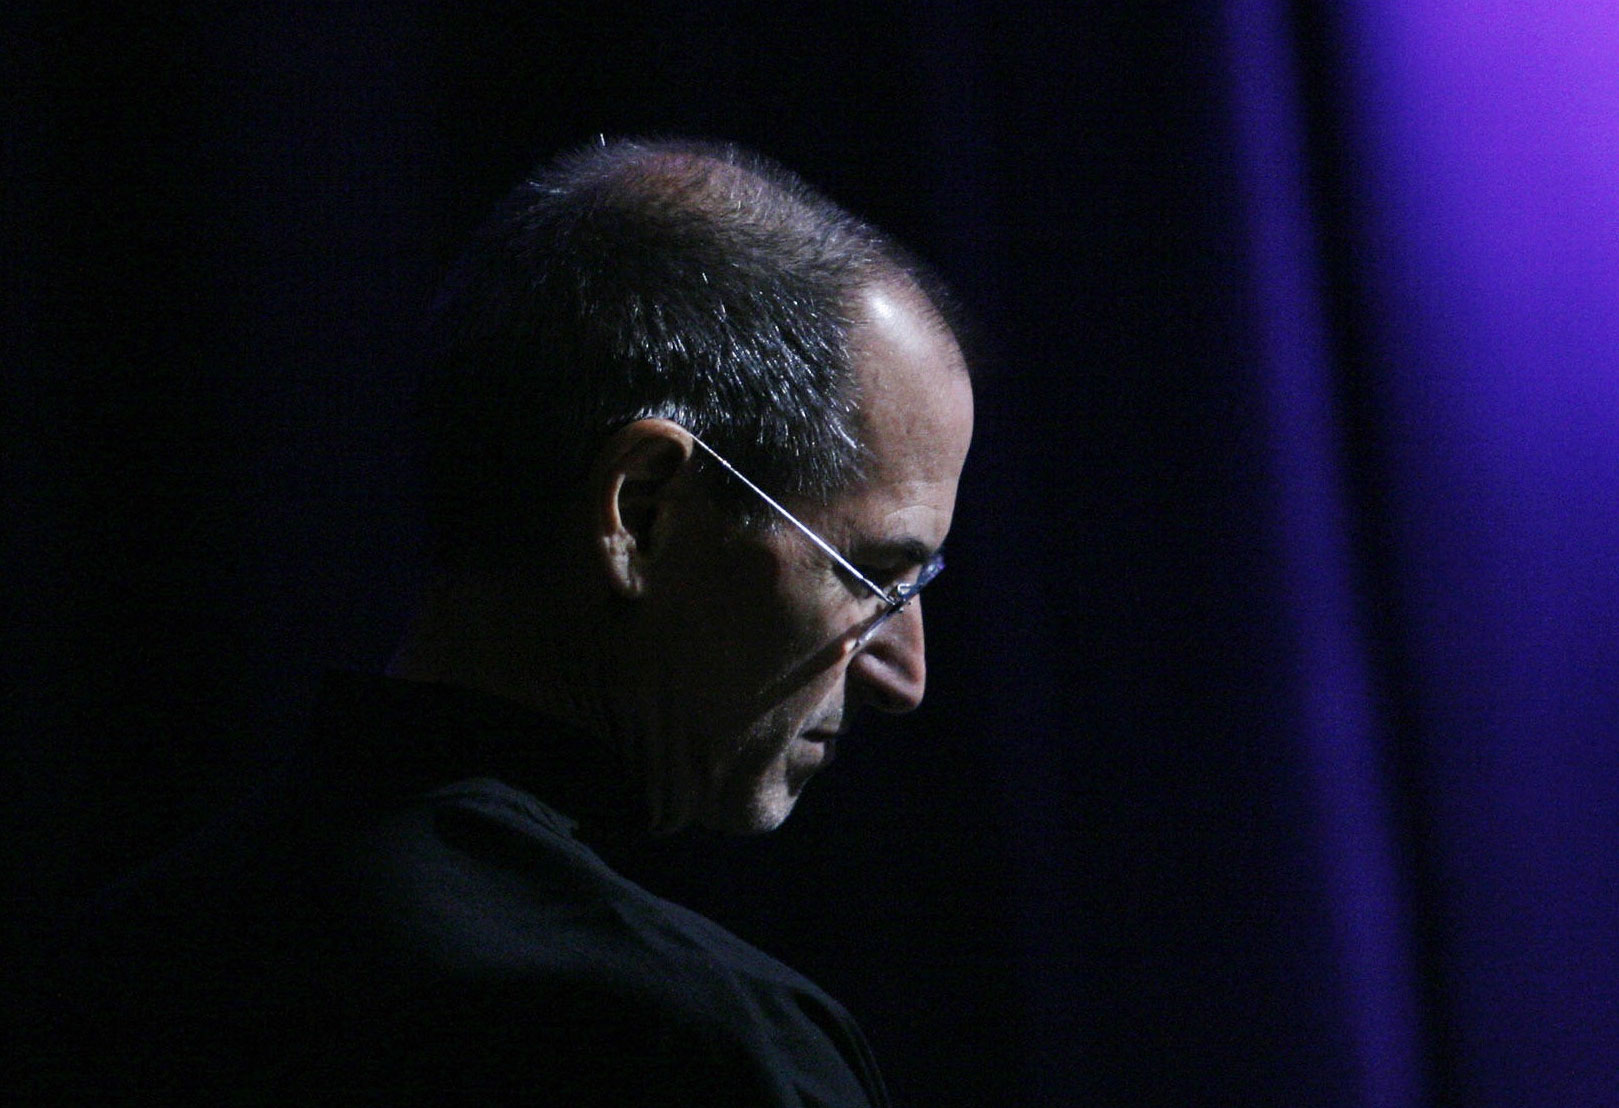 The Steve Jobs ripple effect